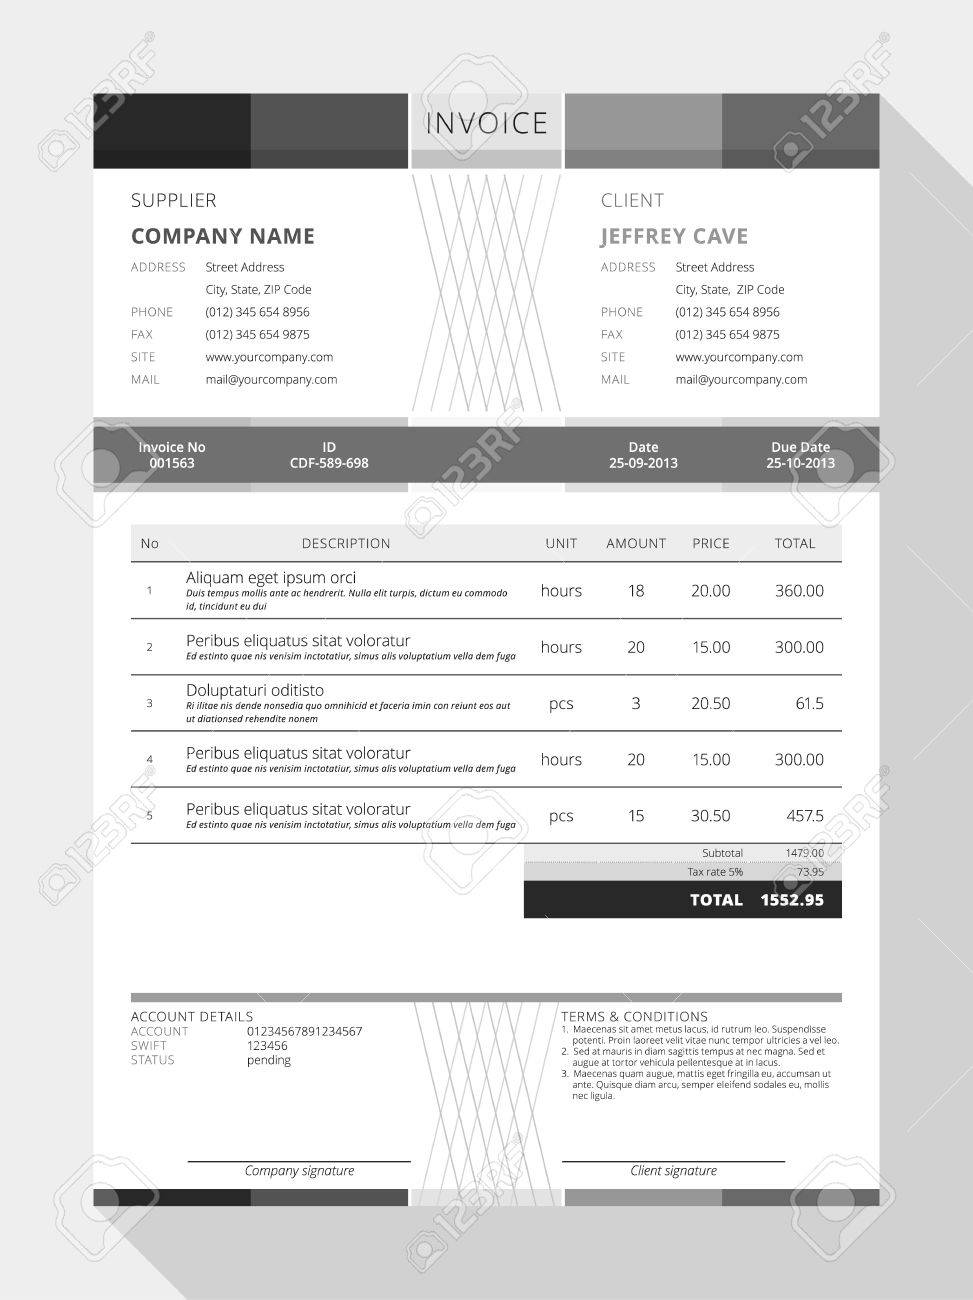 Occupyhistoryus  Inspiring Design An Invoice  Professional Graphic Design Invoice  With Marvelous Vector Customizable Invoice Form Template Design Vector   Design An Invoice With Adorable Creative Invoice Also Fillable Commercial Invoice In Addition Printable Invoice Free And Pest Control Invoice As Well As Catering Invoice Example Additionally Custom Invoice Printing From Happytomco With Occupyhistoryus  Marvelous Design An Invoice  Professional Graphic Design Invoice  With Adorable Vector Customizable Invoice Form Template Design Vector   Design An Invoice And Inspiring Creative Invoice Also Fillable Commercial Invoice In Addition Printable Invoice Free From Happytomco